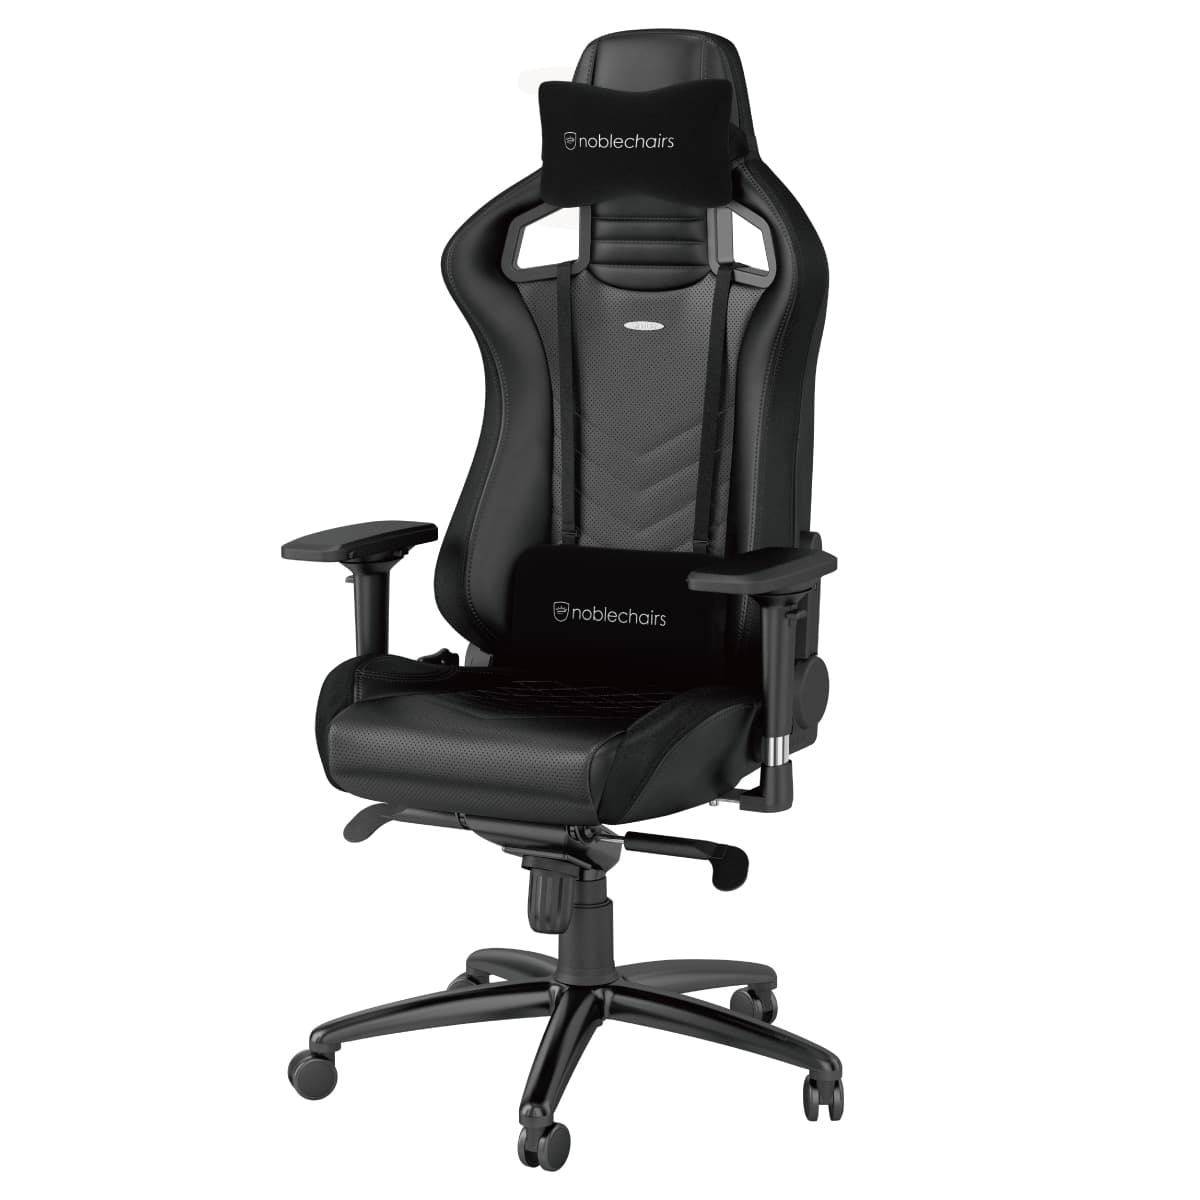 noblechairs-cushionset-web-03